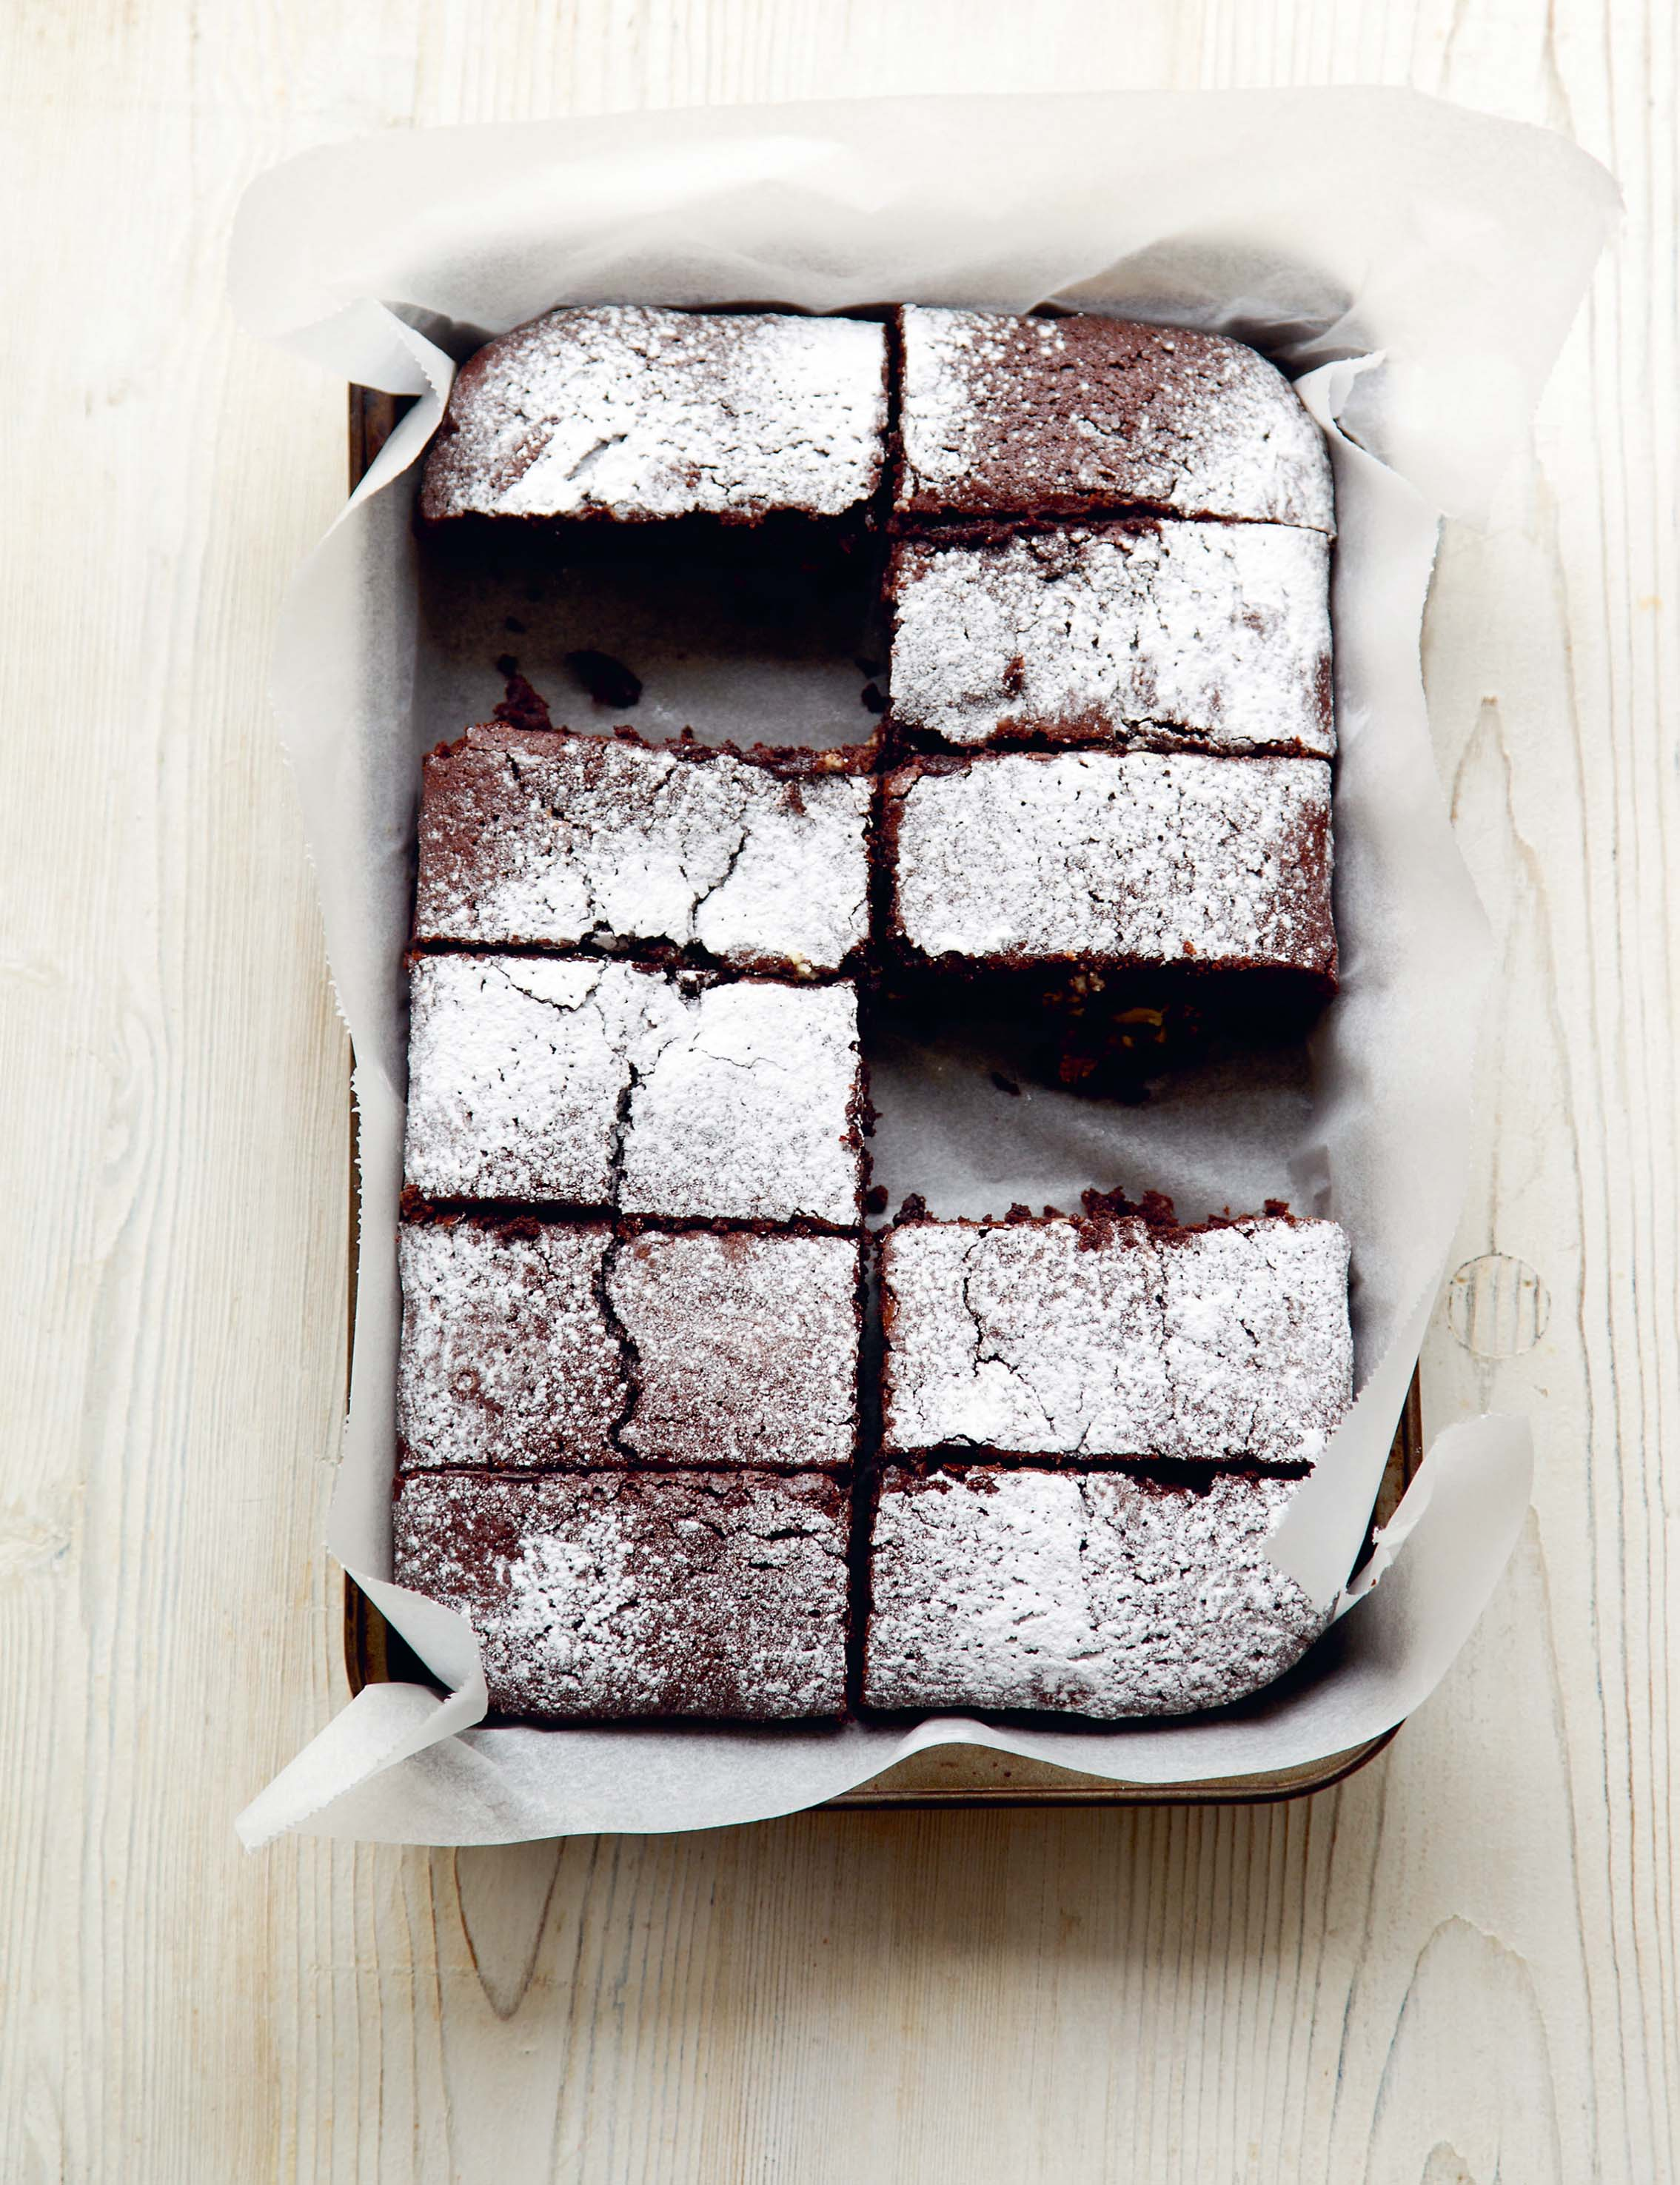 Lucy's chewy chocolate brownies